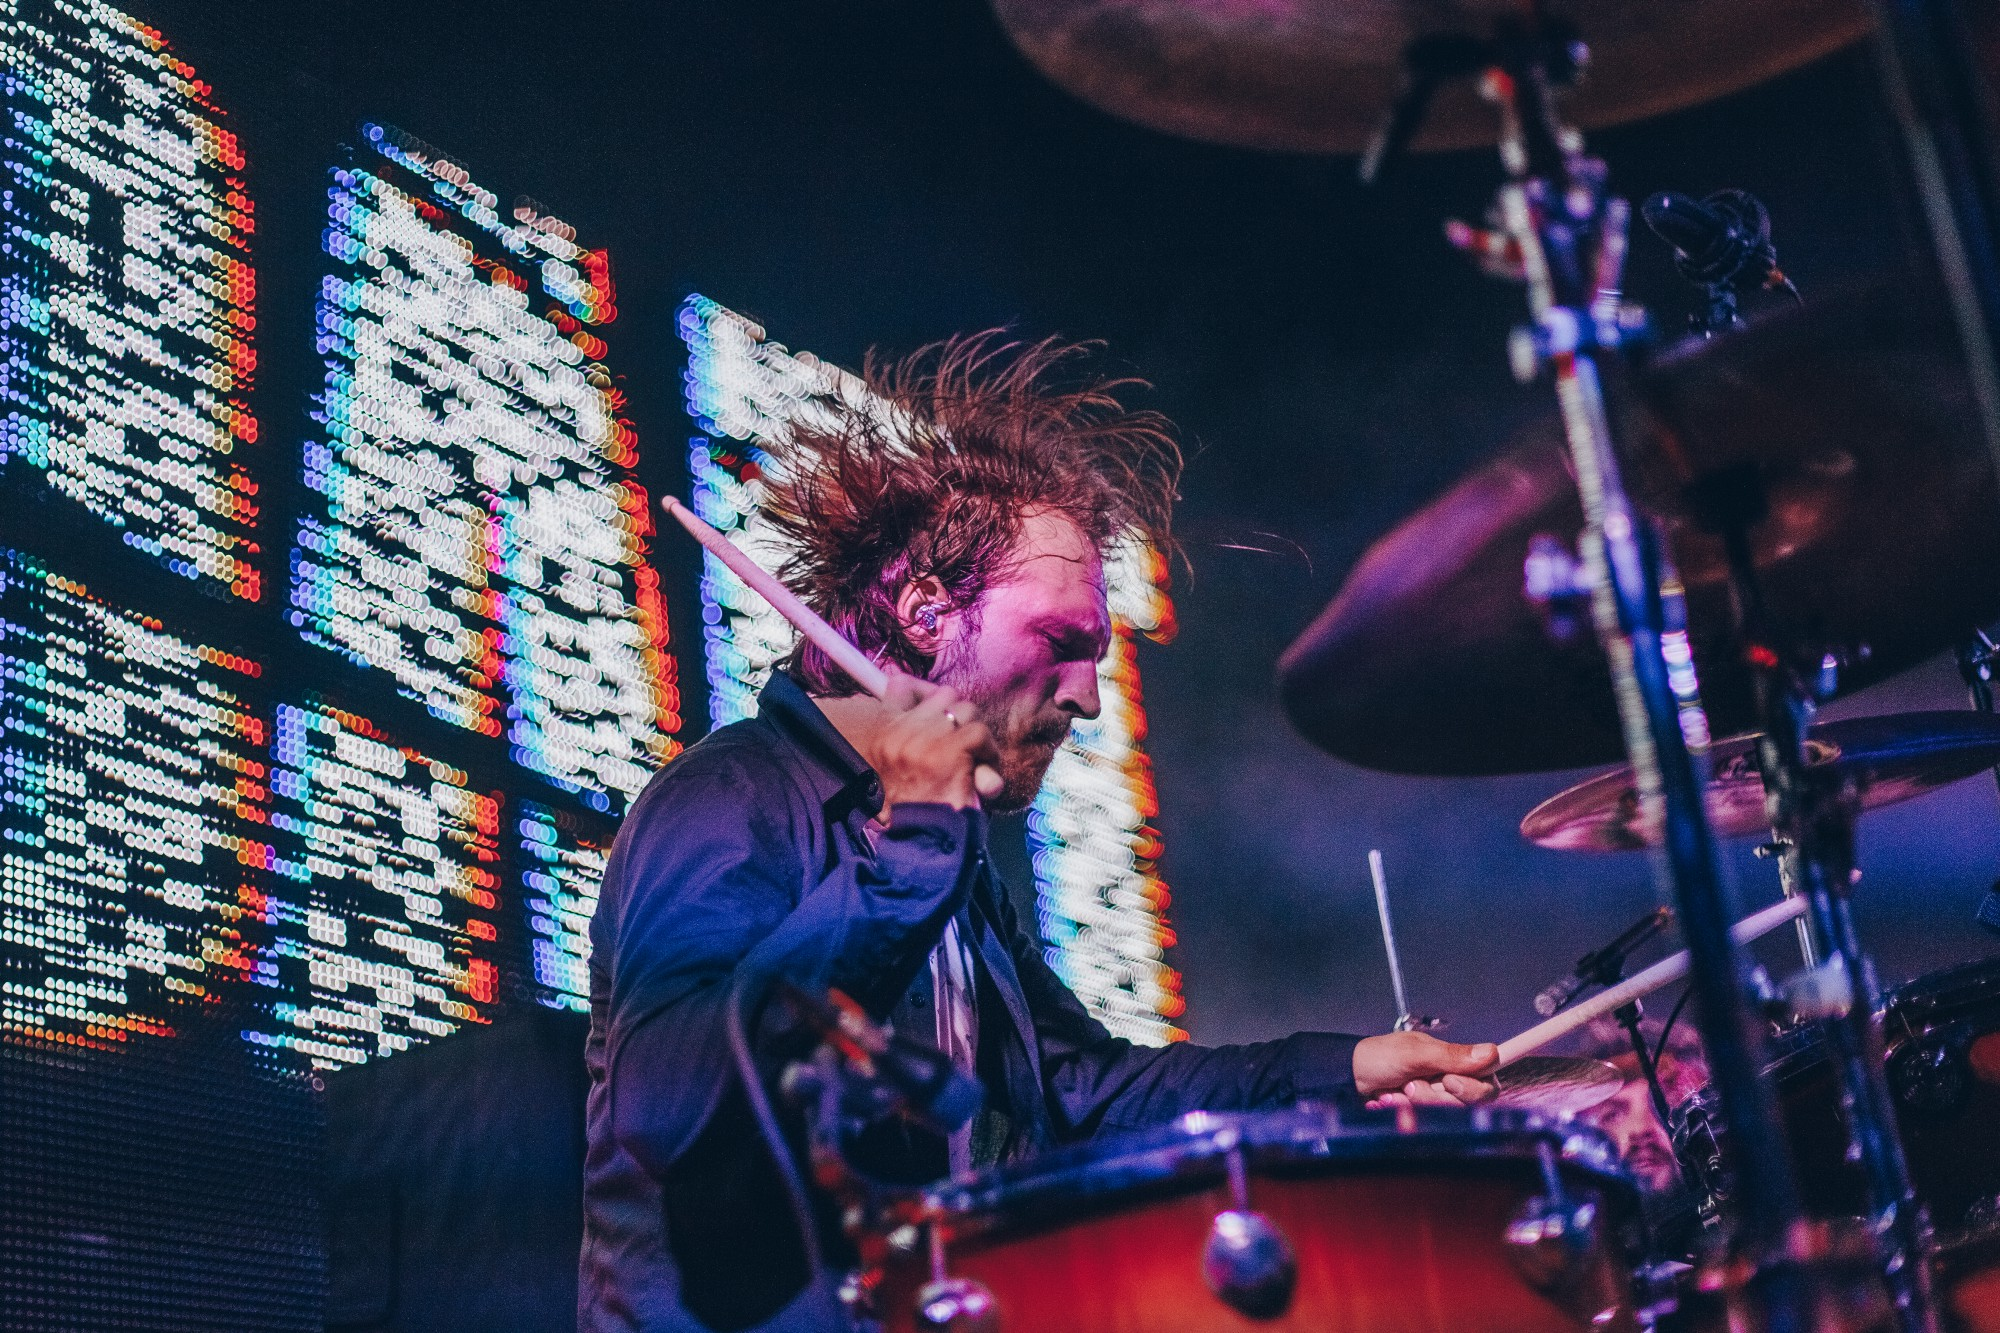 Male drummer on stage playing wildly with lights behind him. His hair is flying everywhere and he looks very concentrated.